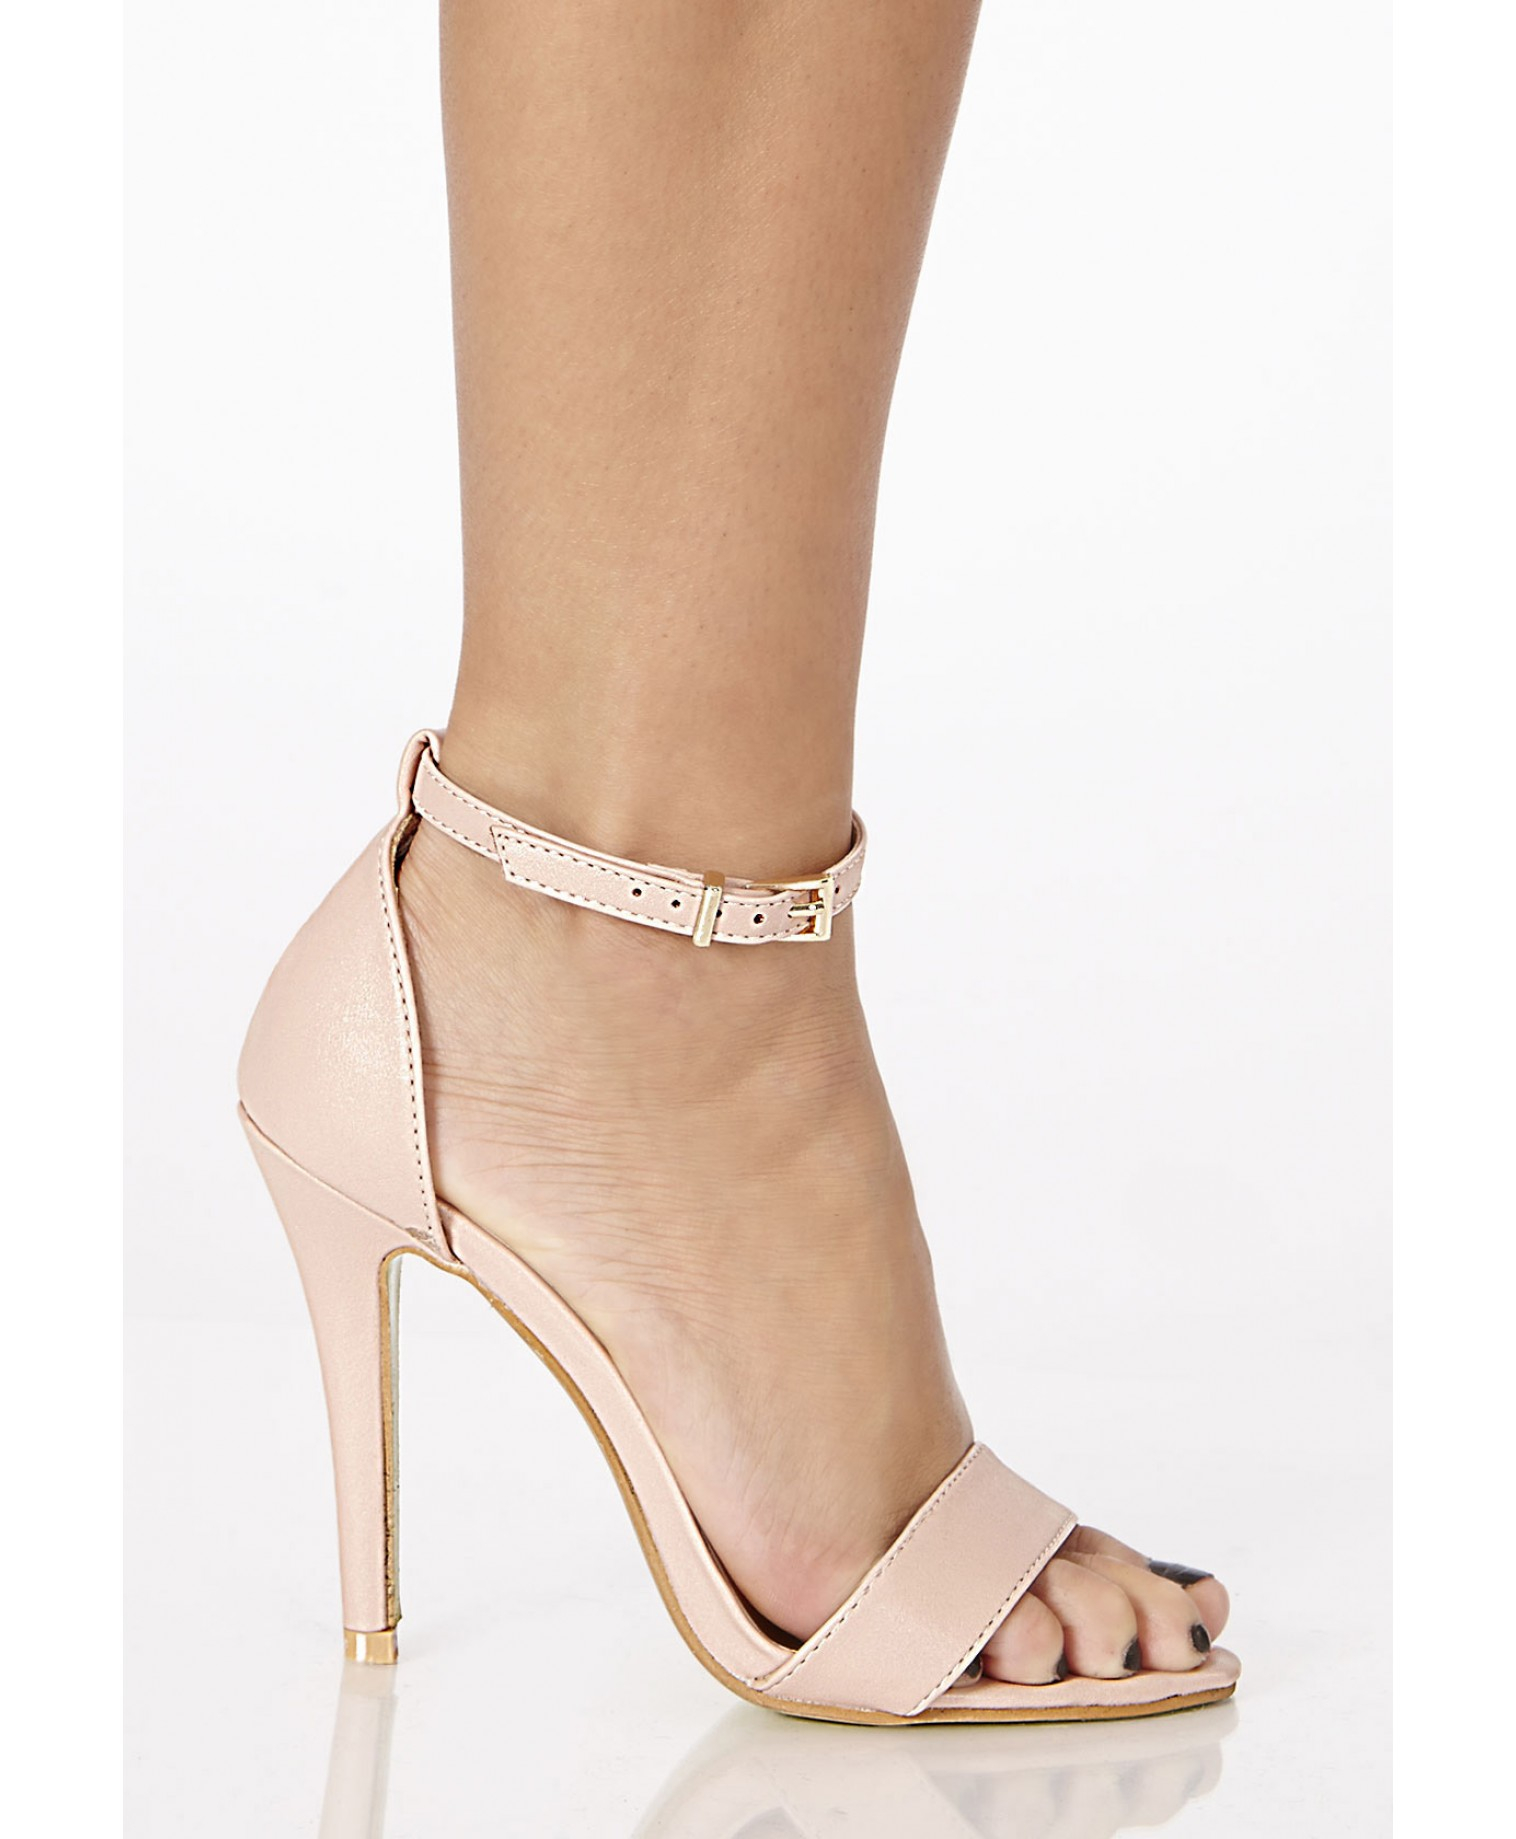 Missguided Kazumi Leather High Heeled Sandals in Nude in Natural